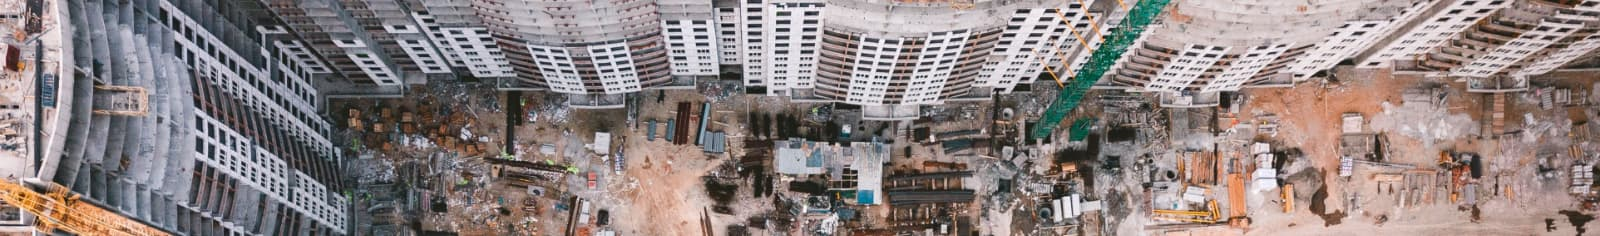 Birds-eye view of an engineering site among highrise buildings